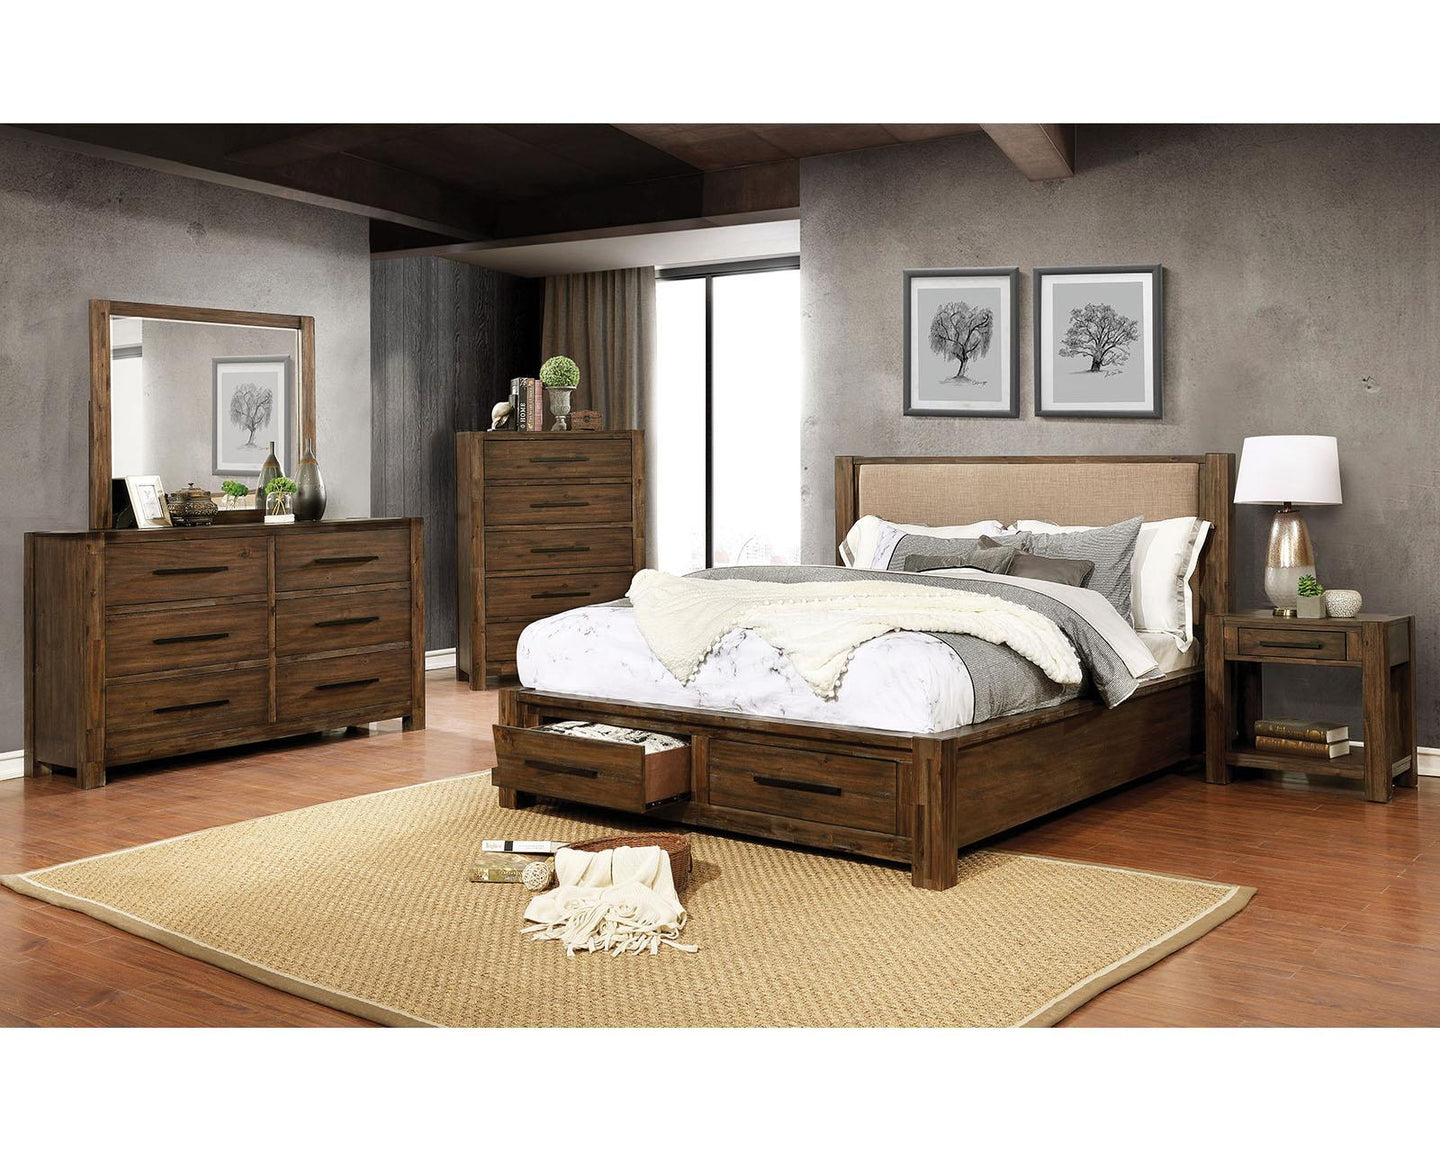 Coney Walnut/tan King Bed